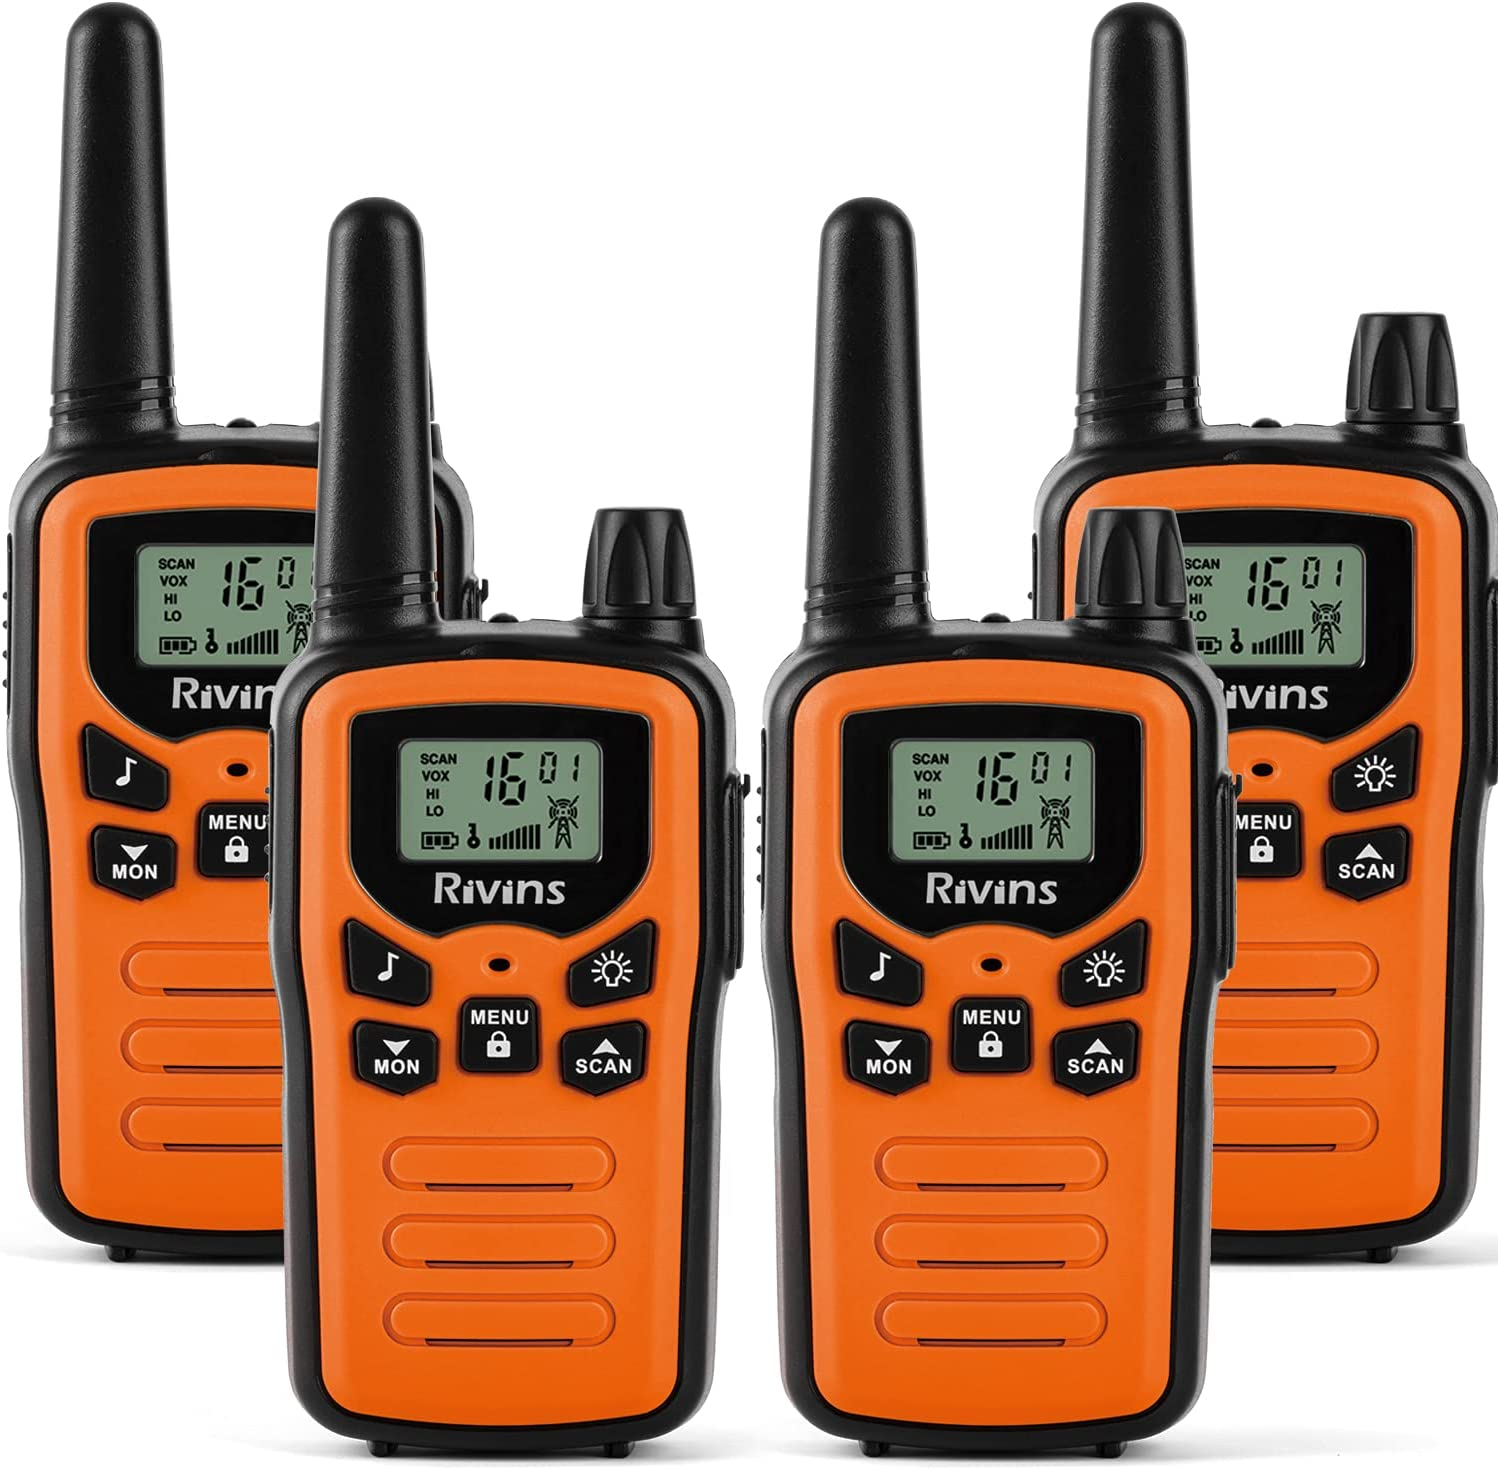 Walkie Talkies for Adults Max 70% OFF 4 Pack Brand Cheap Sale Venue Radio 22 Channel V 2-Way Radios